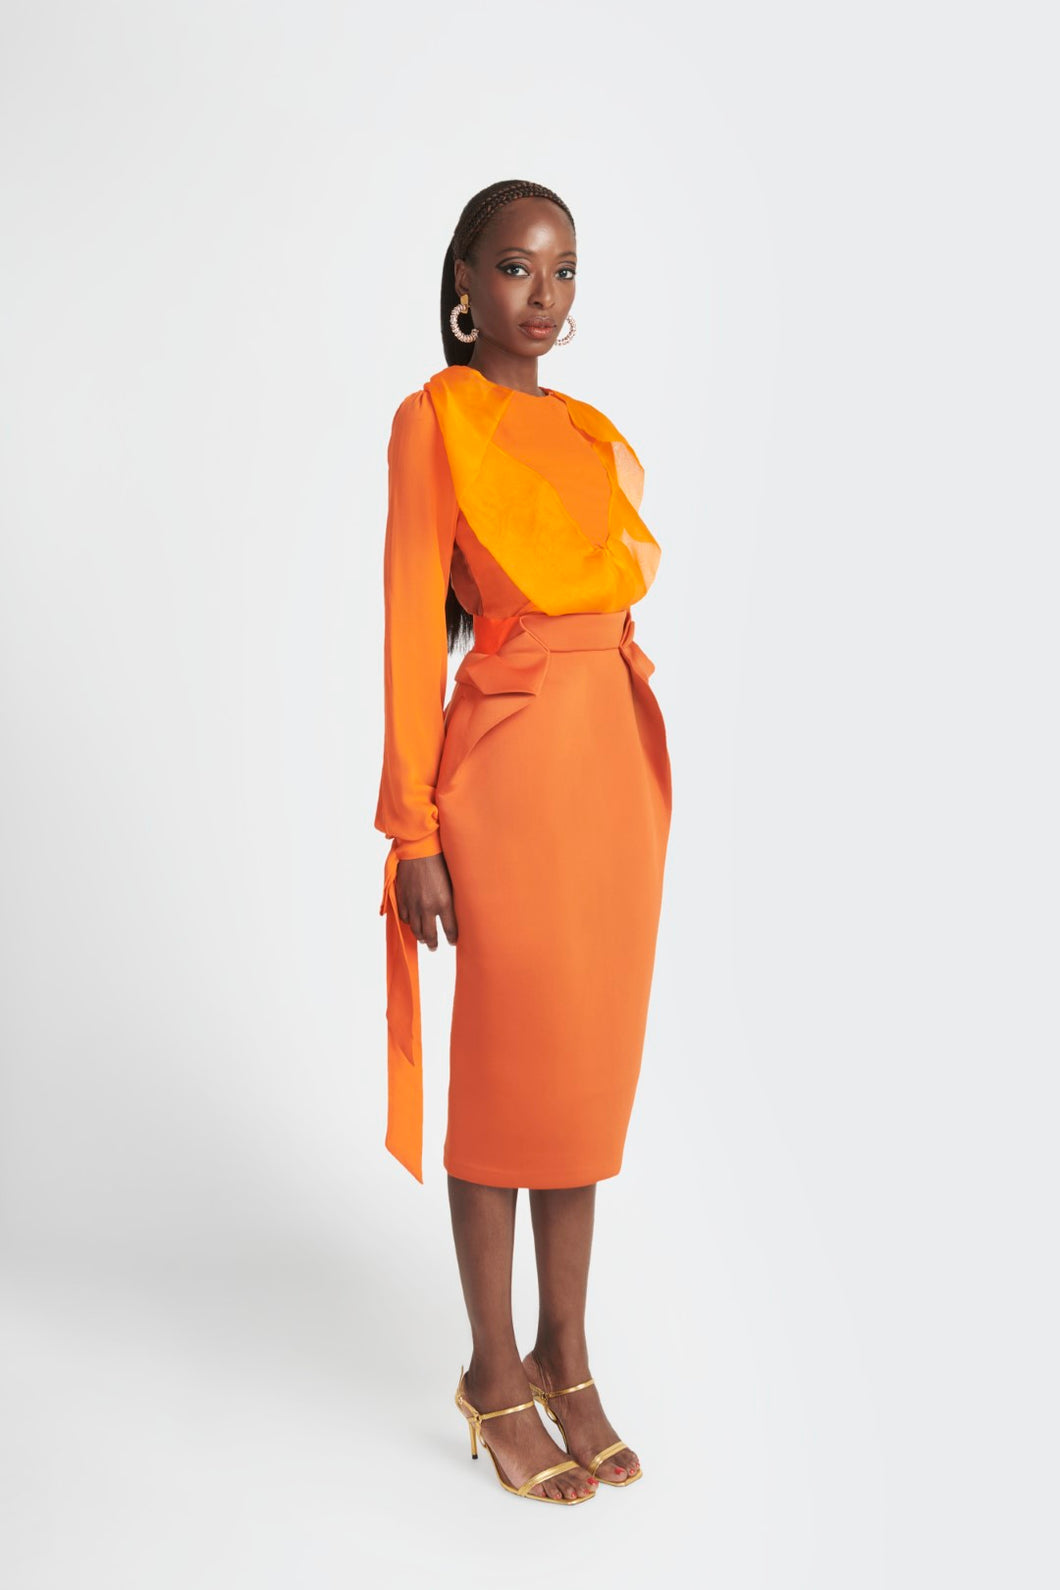 Statement structured skirt with pockets  by Sukeina in orange